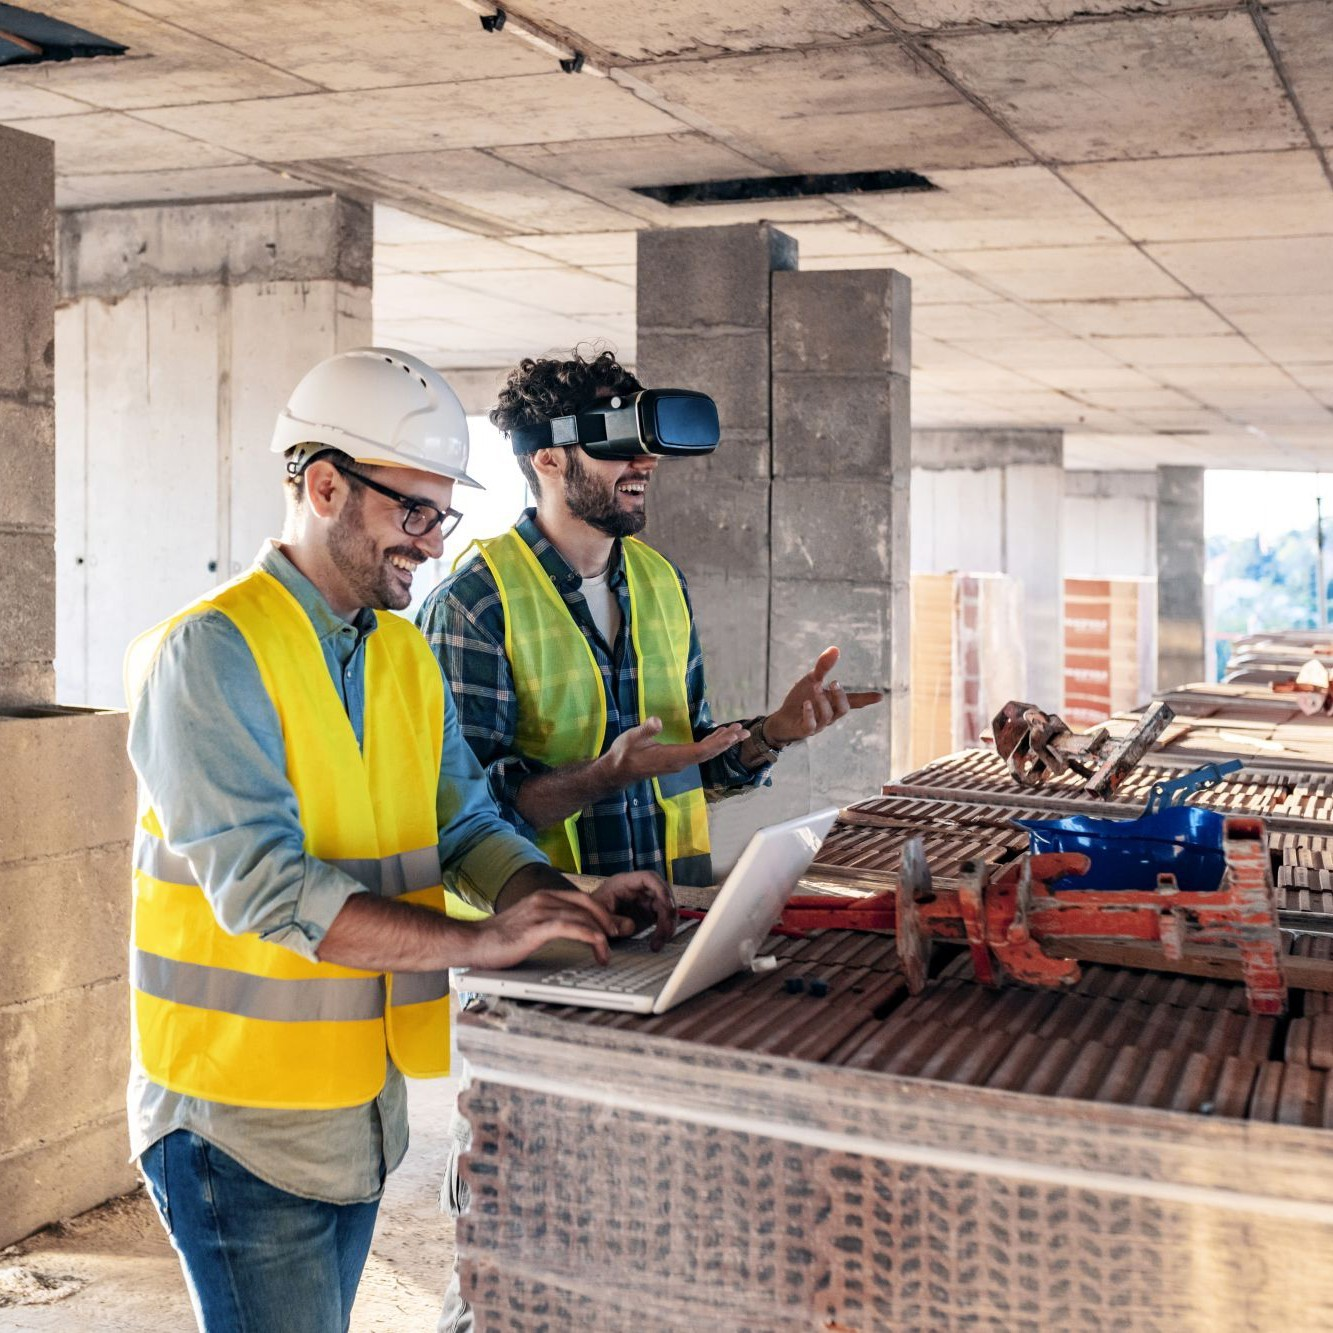 we optimize everything, we design 3D, BIM, everything is 3D simulated, we do the construction quality management using the latest technologies, h4l, home 4 life, the neighborhood that enlivens life